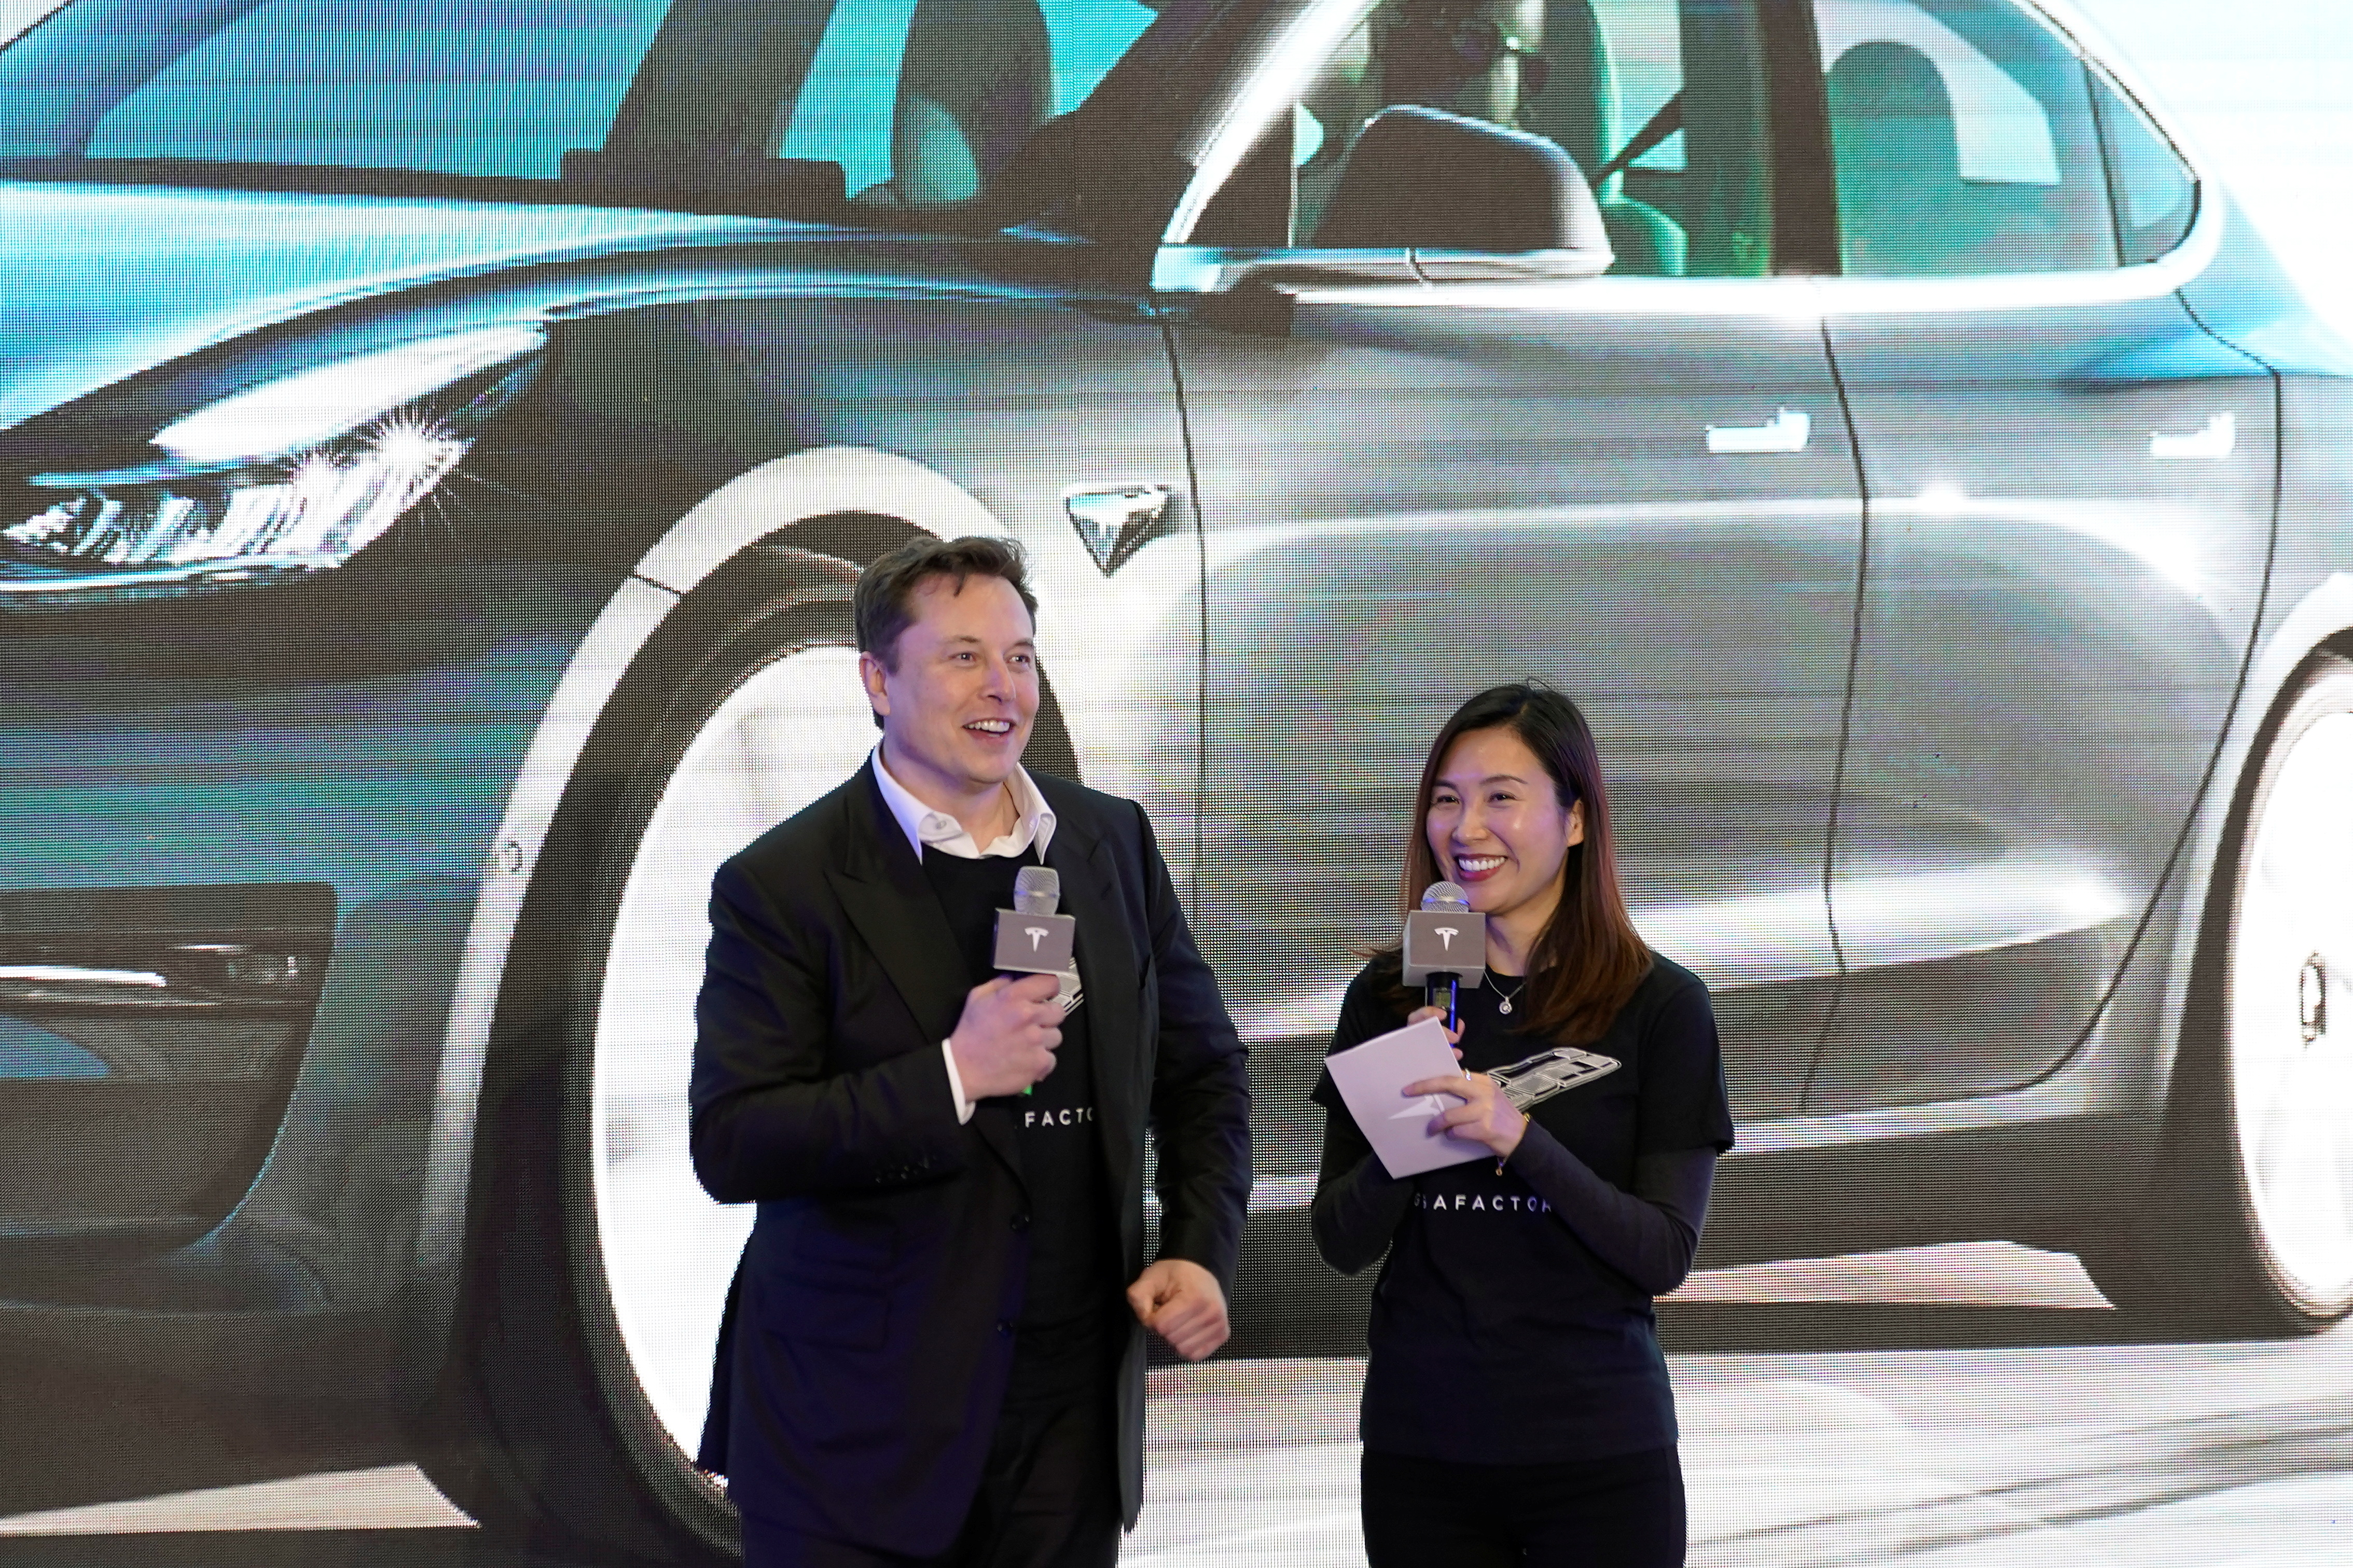 Tesla Inc CEO Elon Musk and Grace Tao, Tesla's vice president for external relations, attend a delivery ceremony for the electric vehicle (EV) maker's China-made Model 3 cars in Shanghai, China January 7, 2020. REUTERS/Aly Song